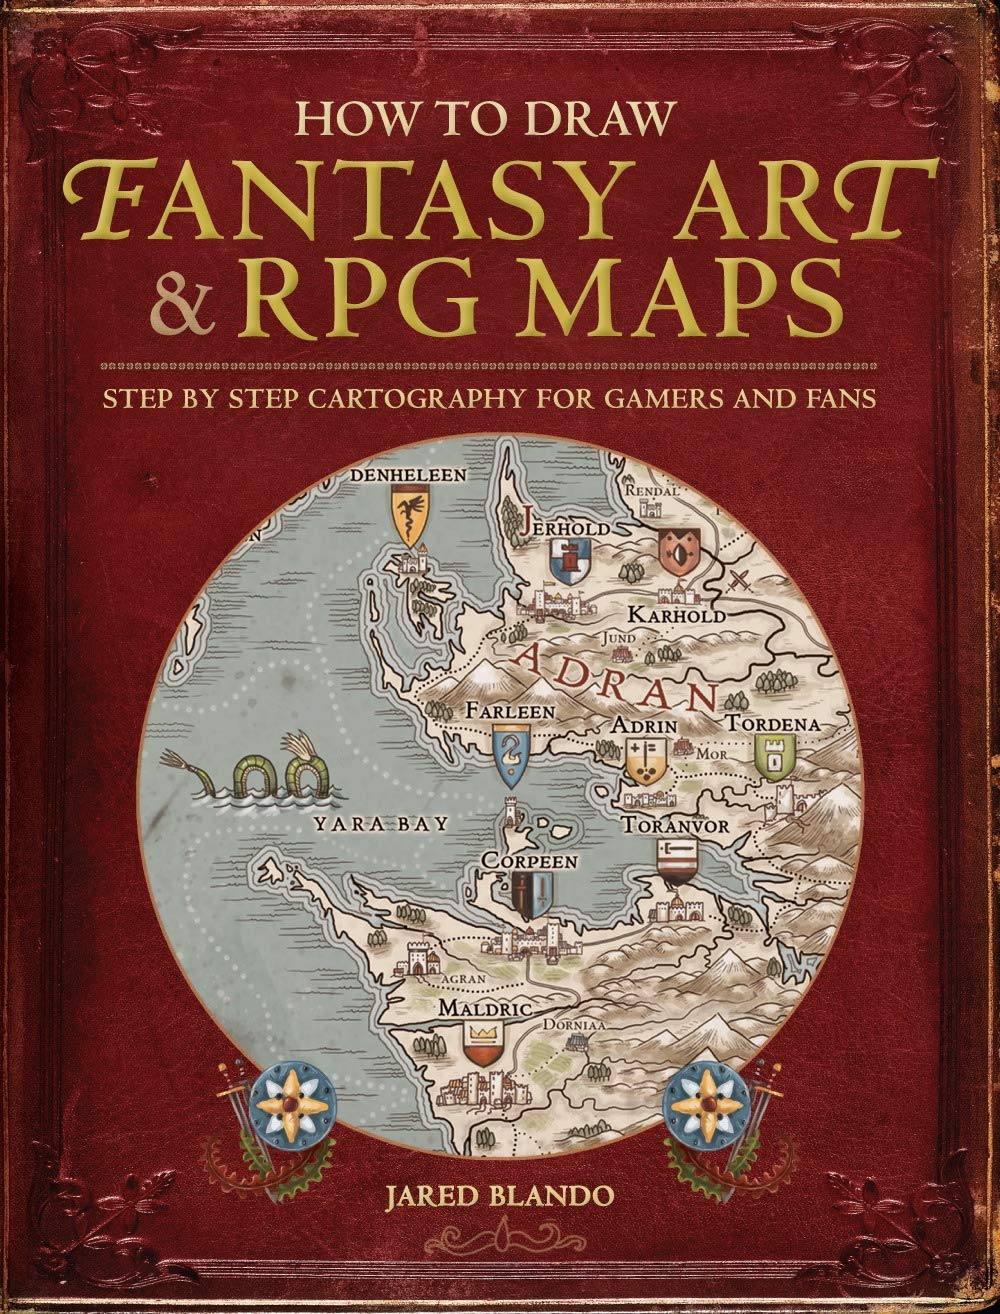 Amazon Com How To Draw Fantasy Art And Rpg Maps Step By Step Cartography For Gamers And Fans 9781440340246 Blando Jared Books